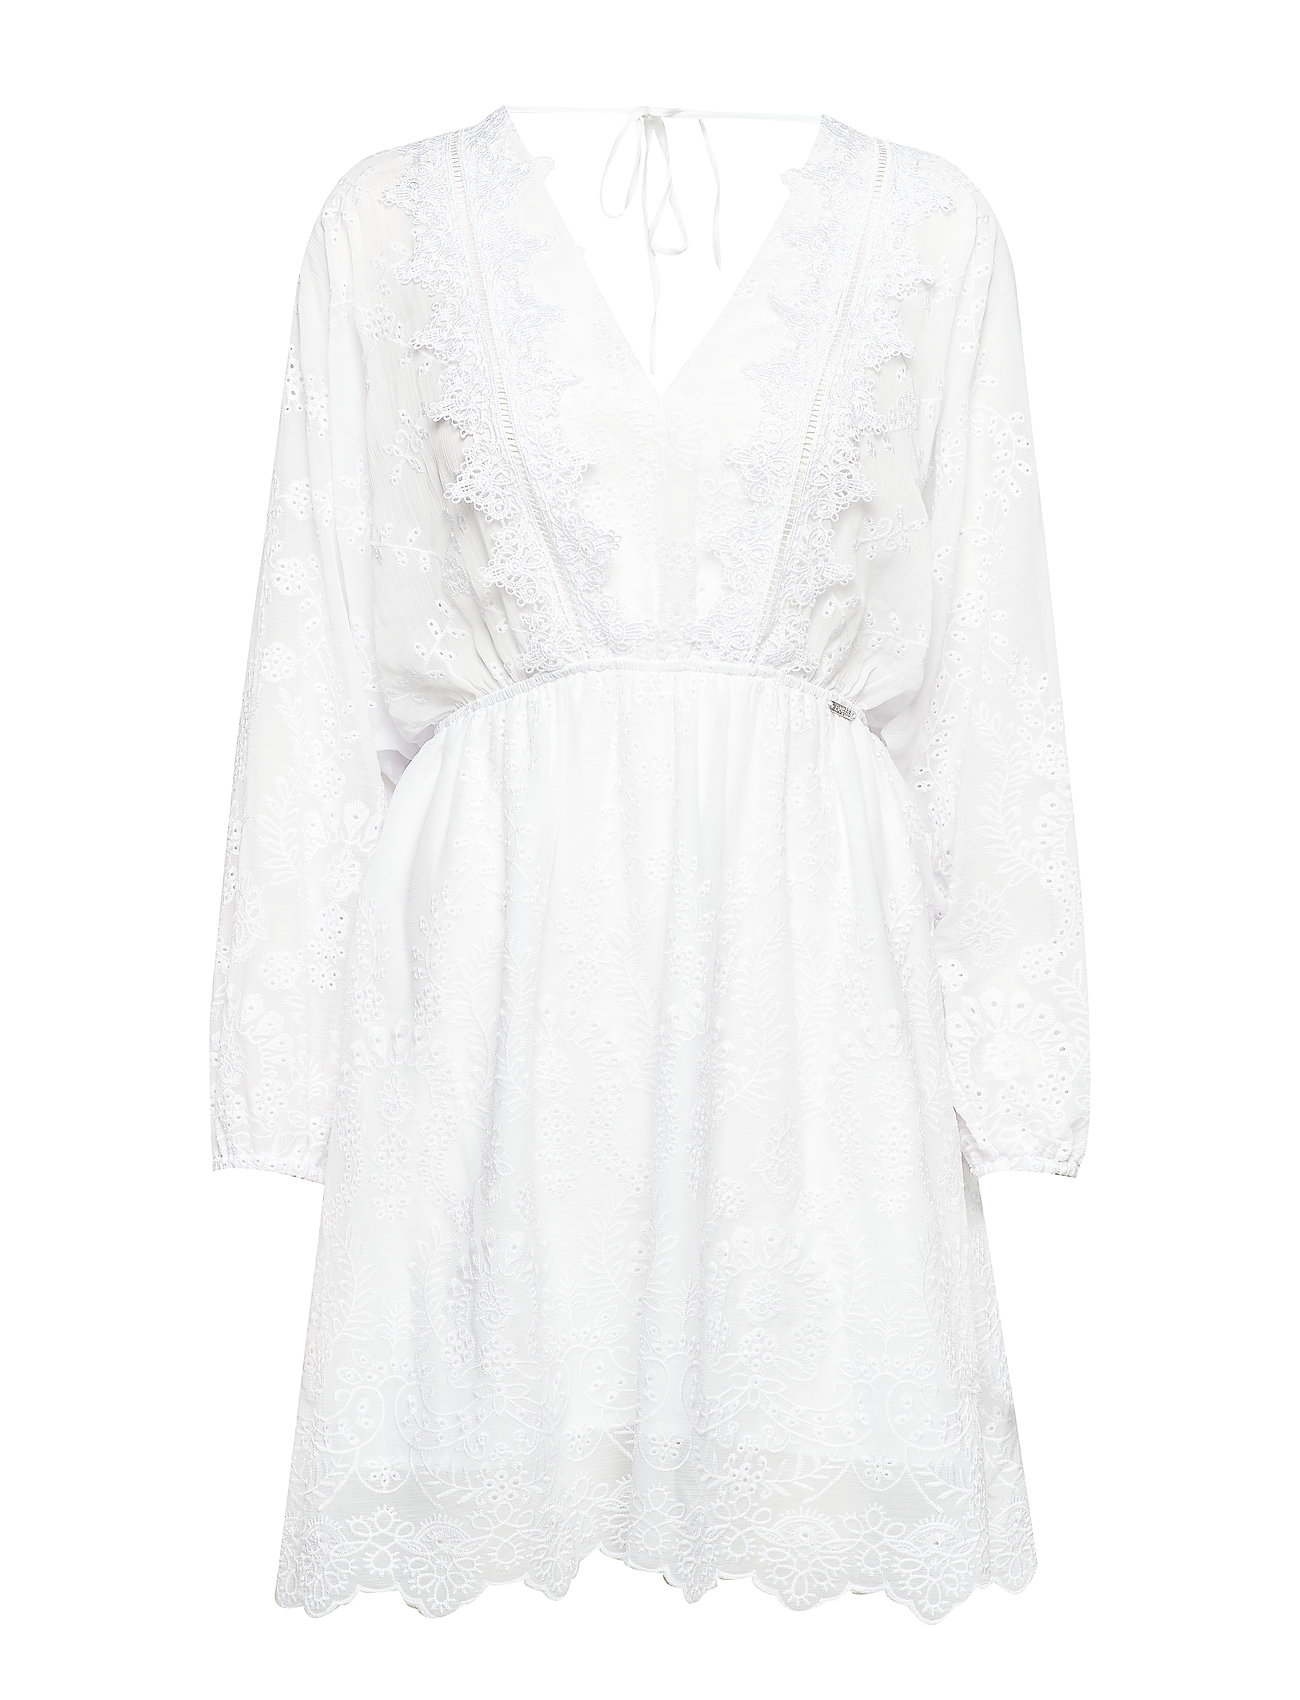 GUESS Jeans SANDY DRESS - TRUE WHITE A000